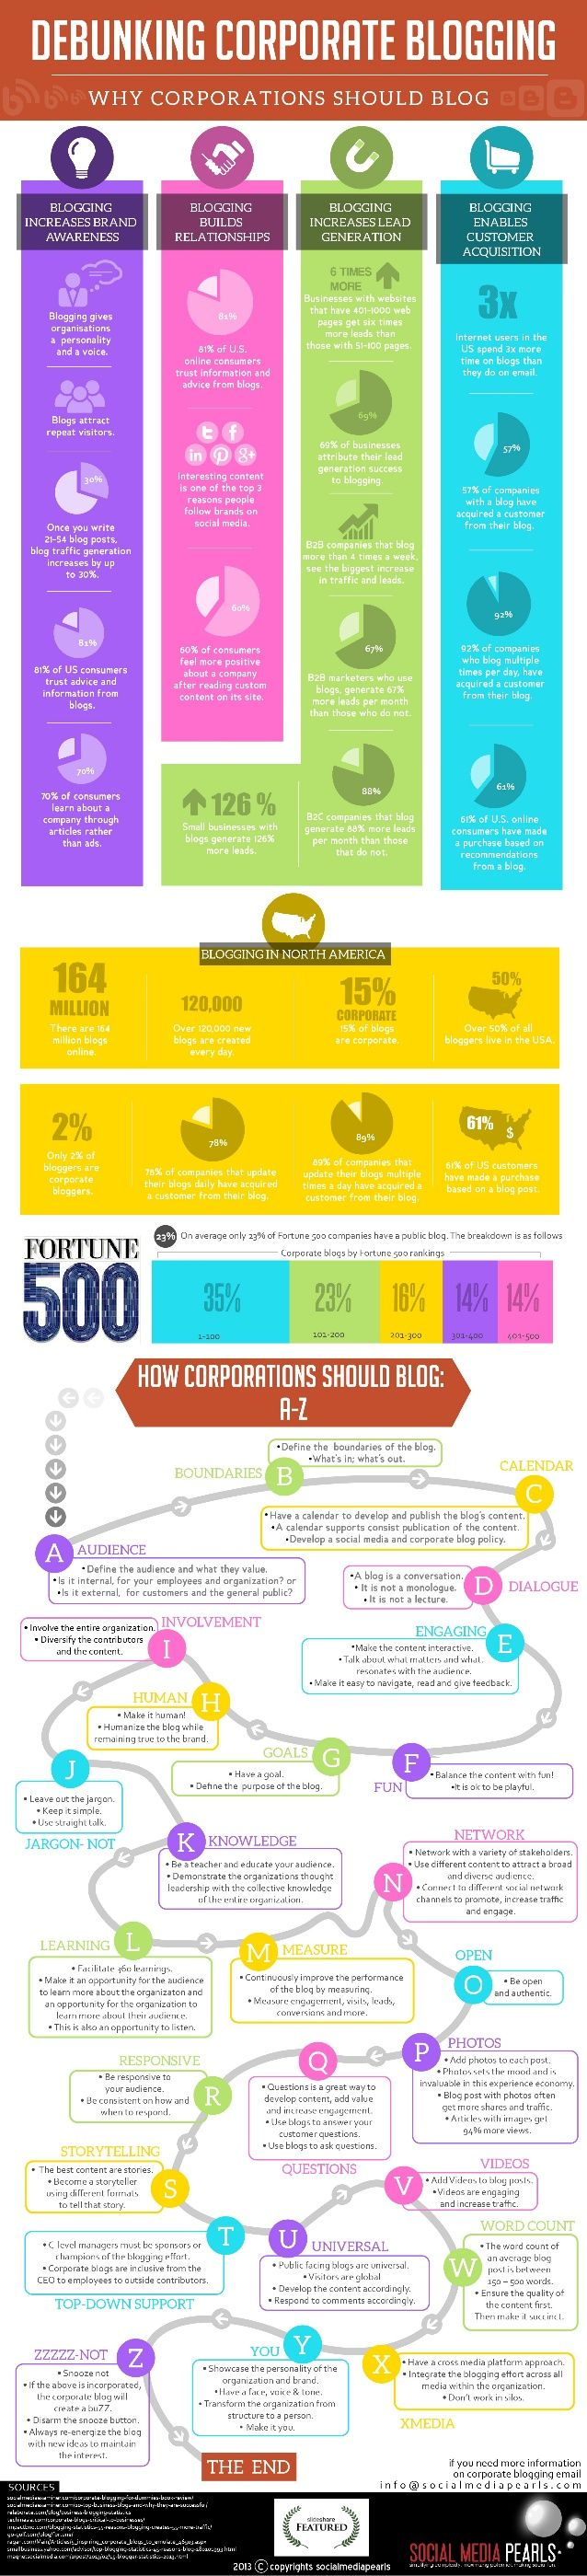 Debunking Corporate Blogging by Shirley Williams via slideshare